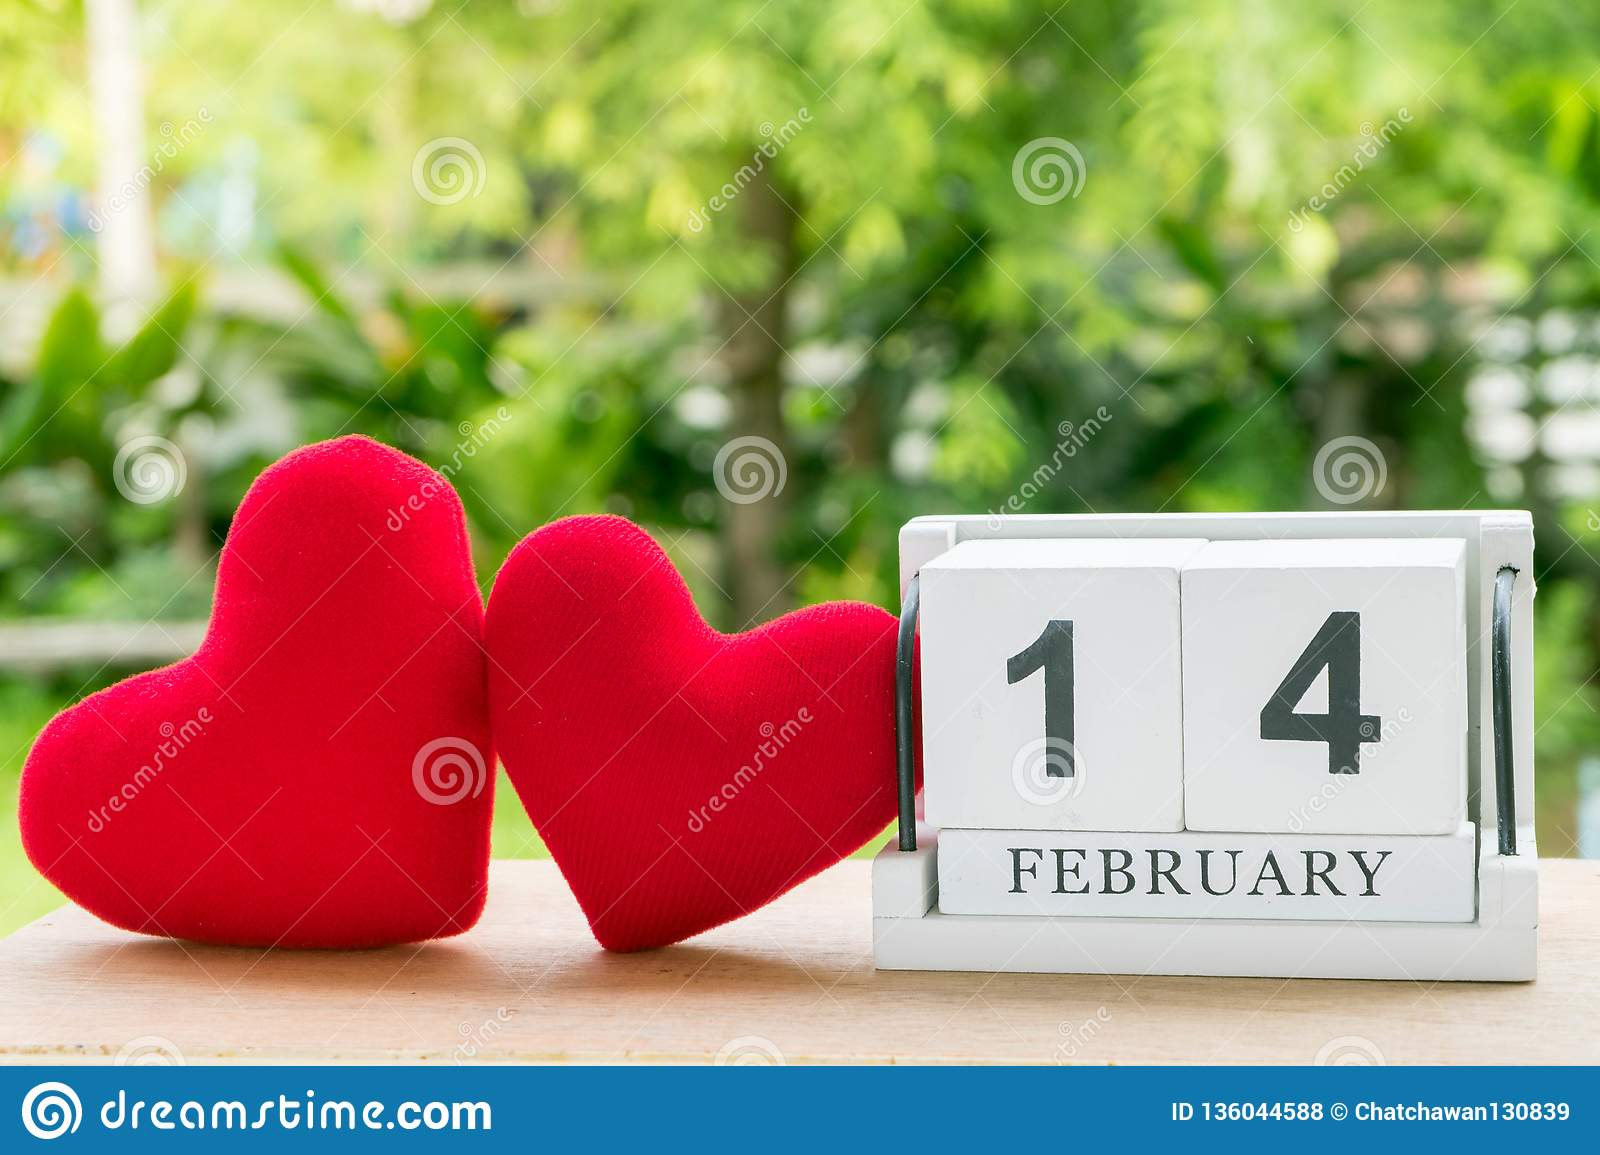 The February 14 wooden calendar features two red hearts placed side by side with a natural background.Valentine day